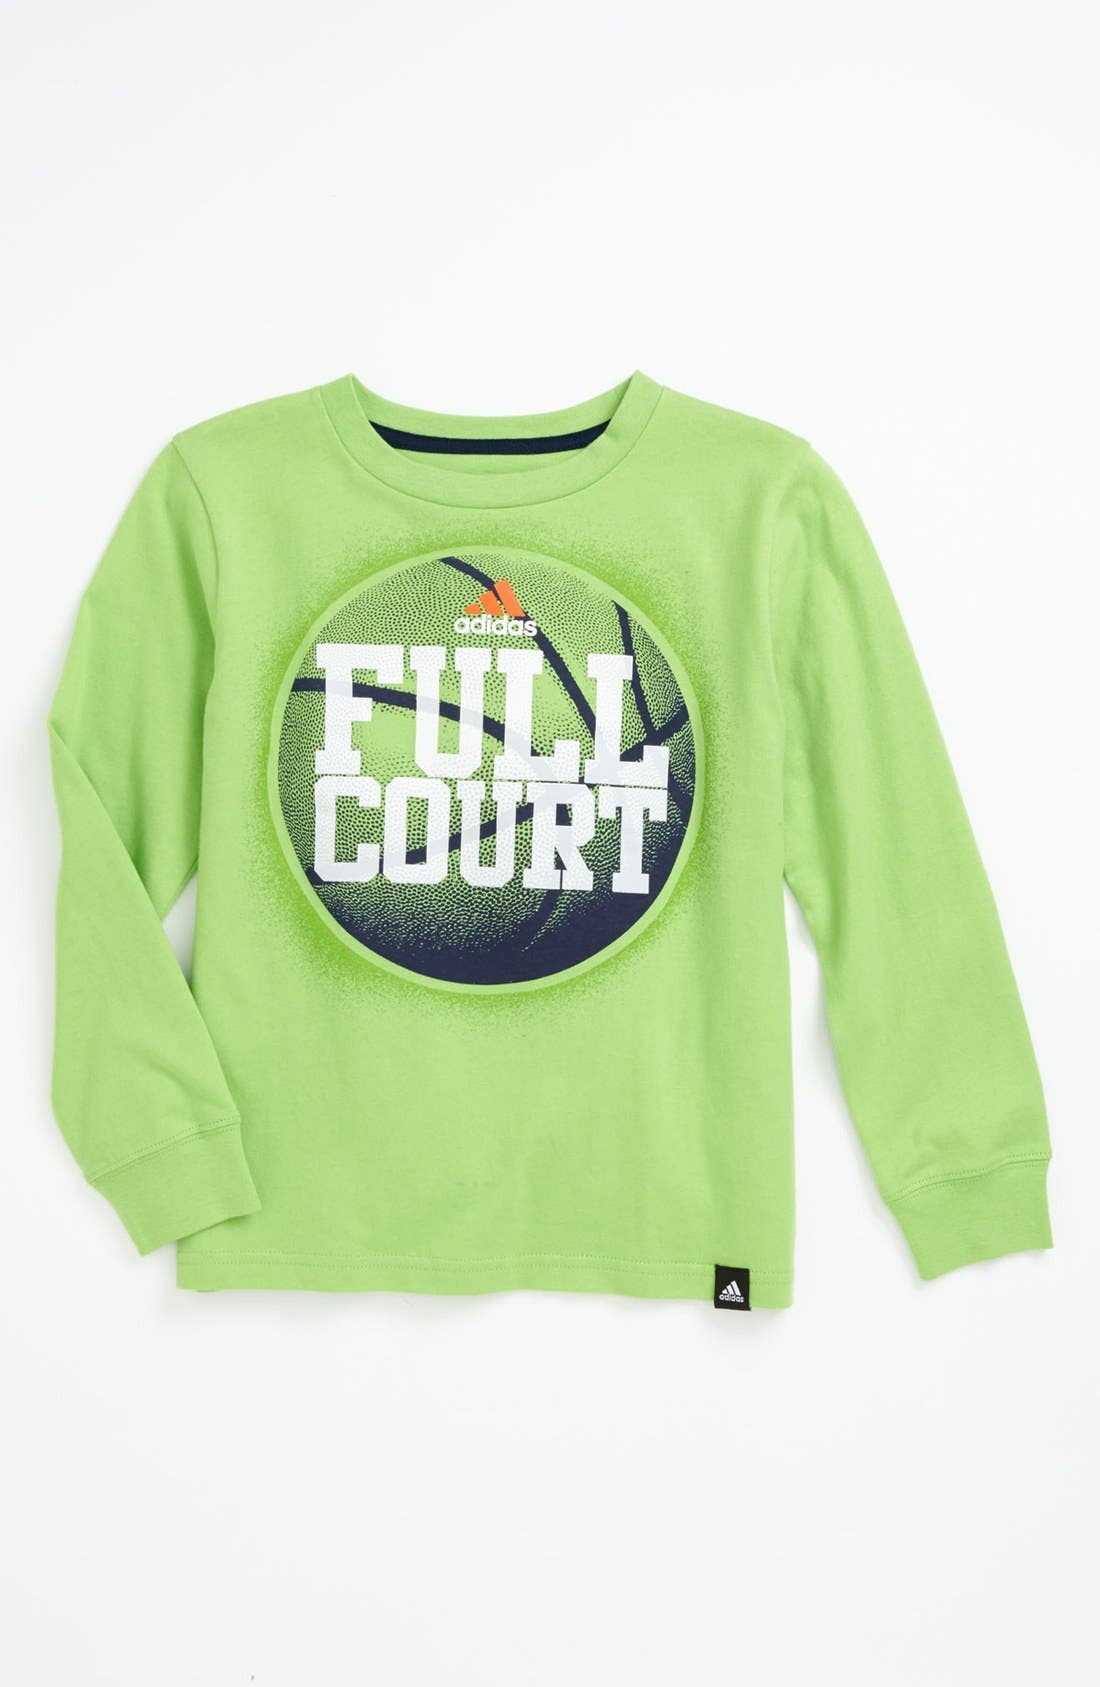 Alternate Image 1 Selected - adidas 'Full Court' Long Sleeve Tee (Little Boys)